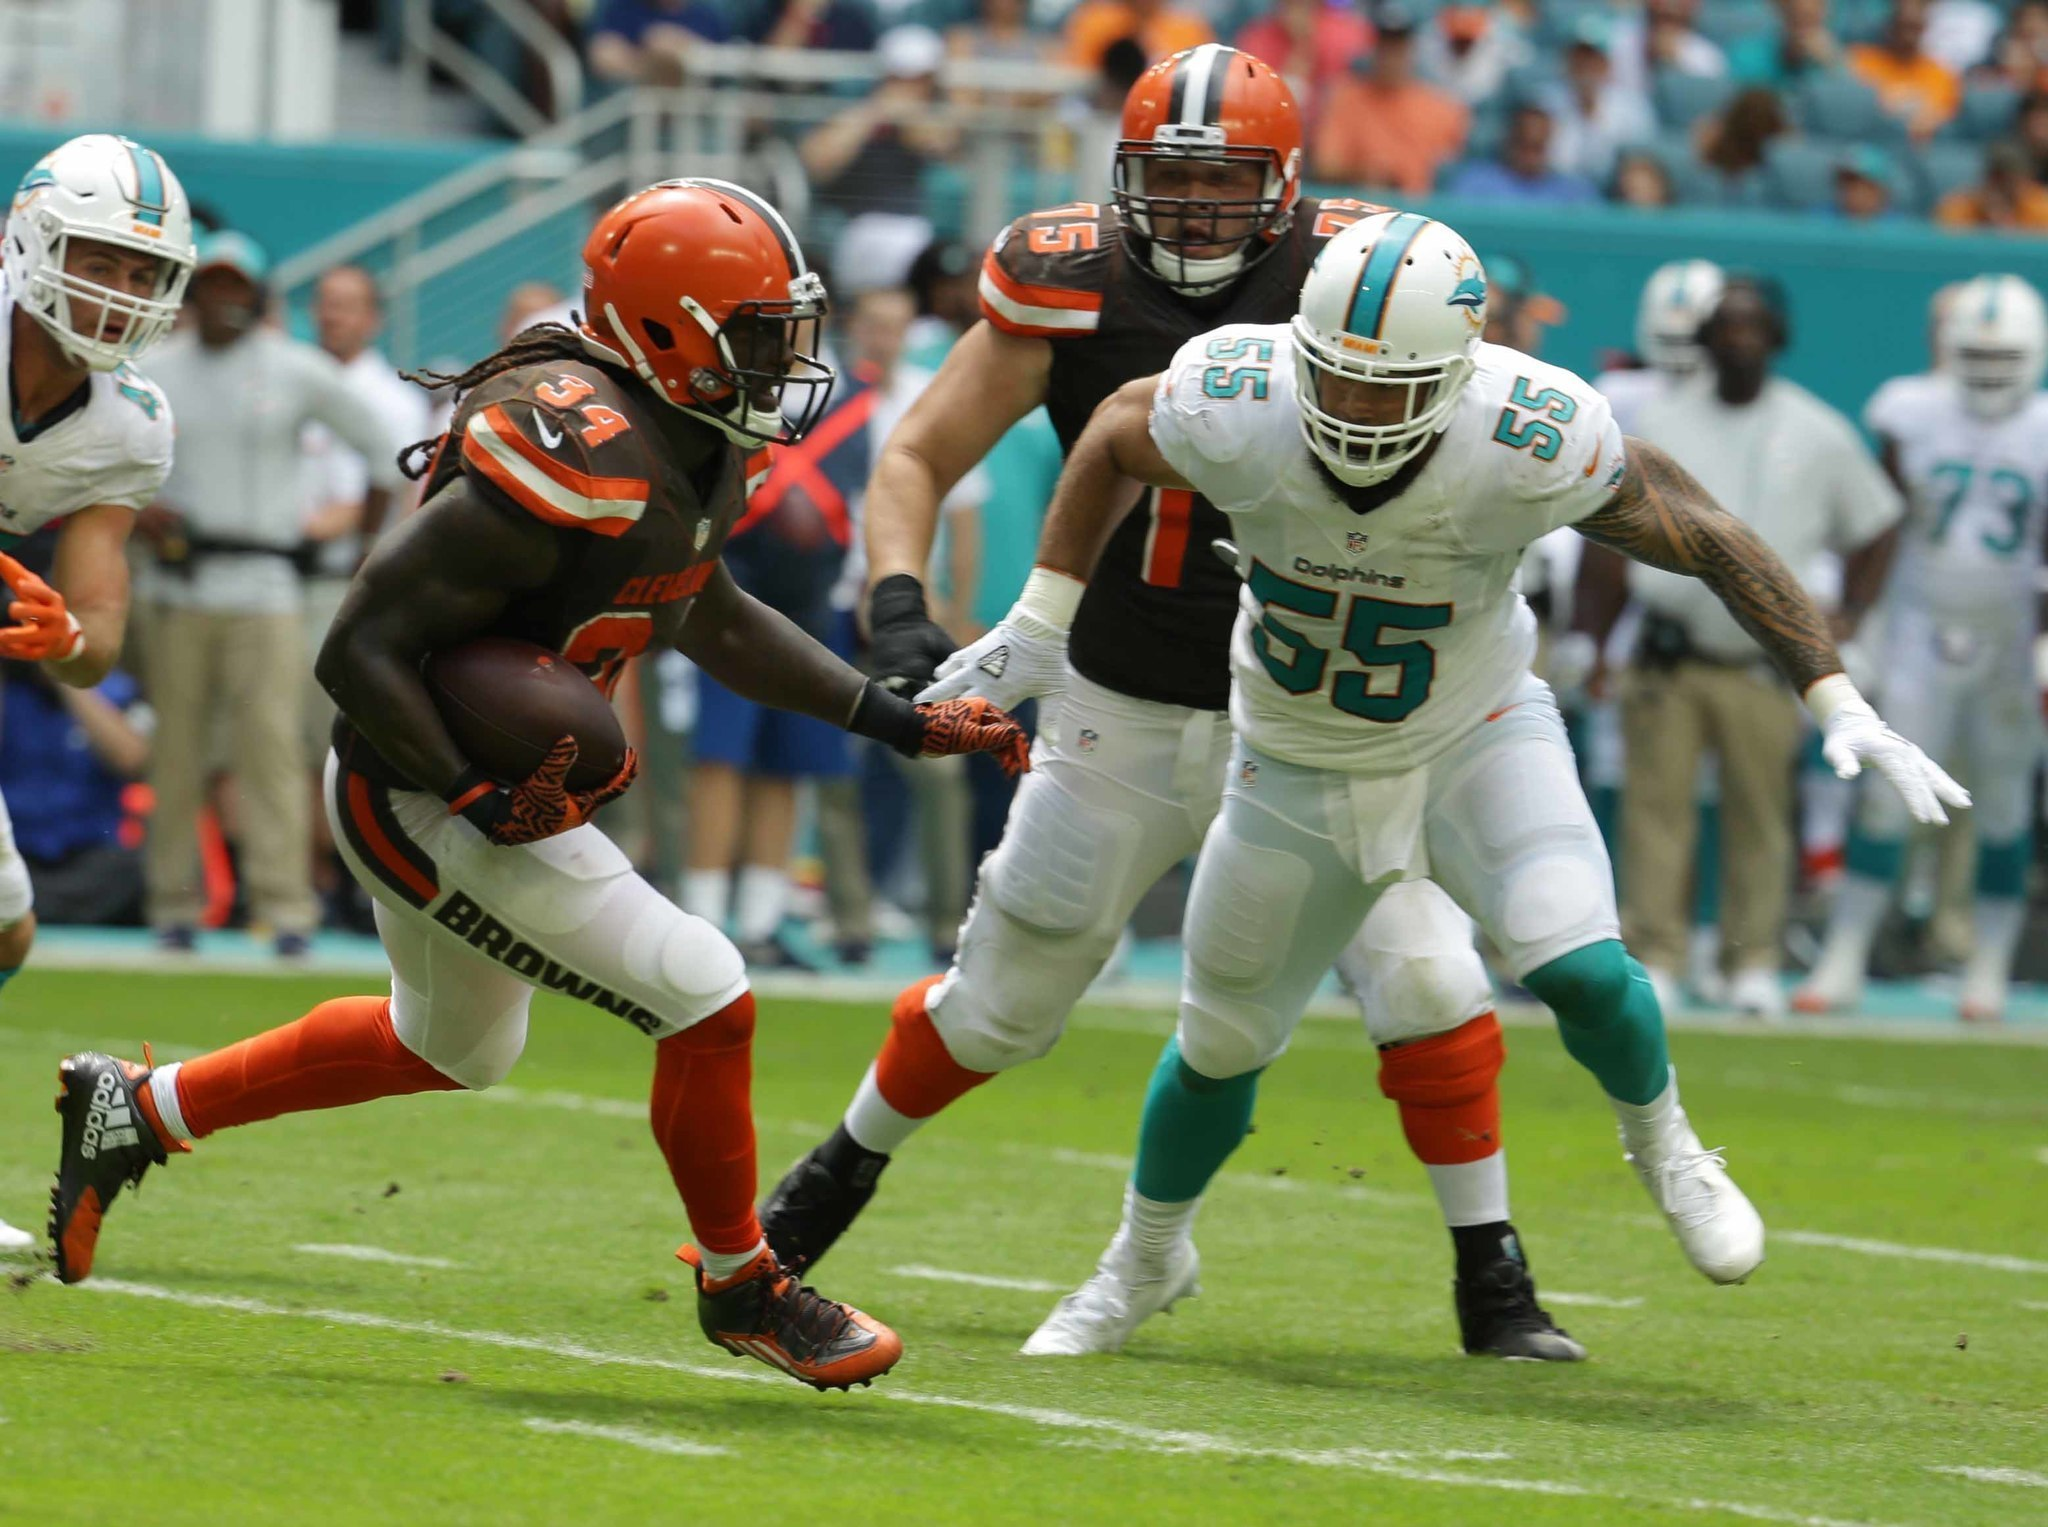 Sfl-dolphins-depth-will-be-tested-against-bengals-20160929